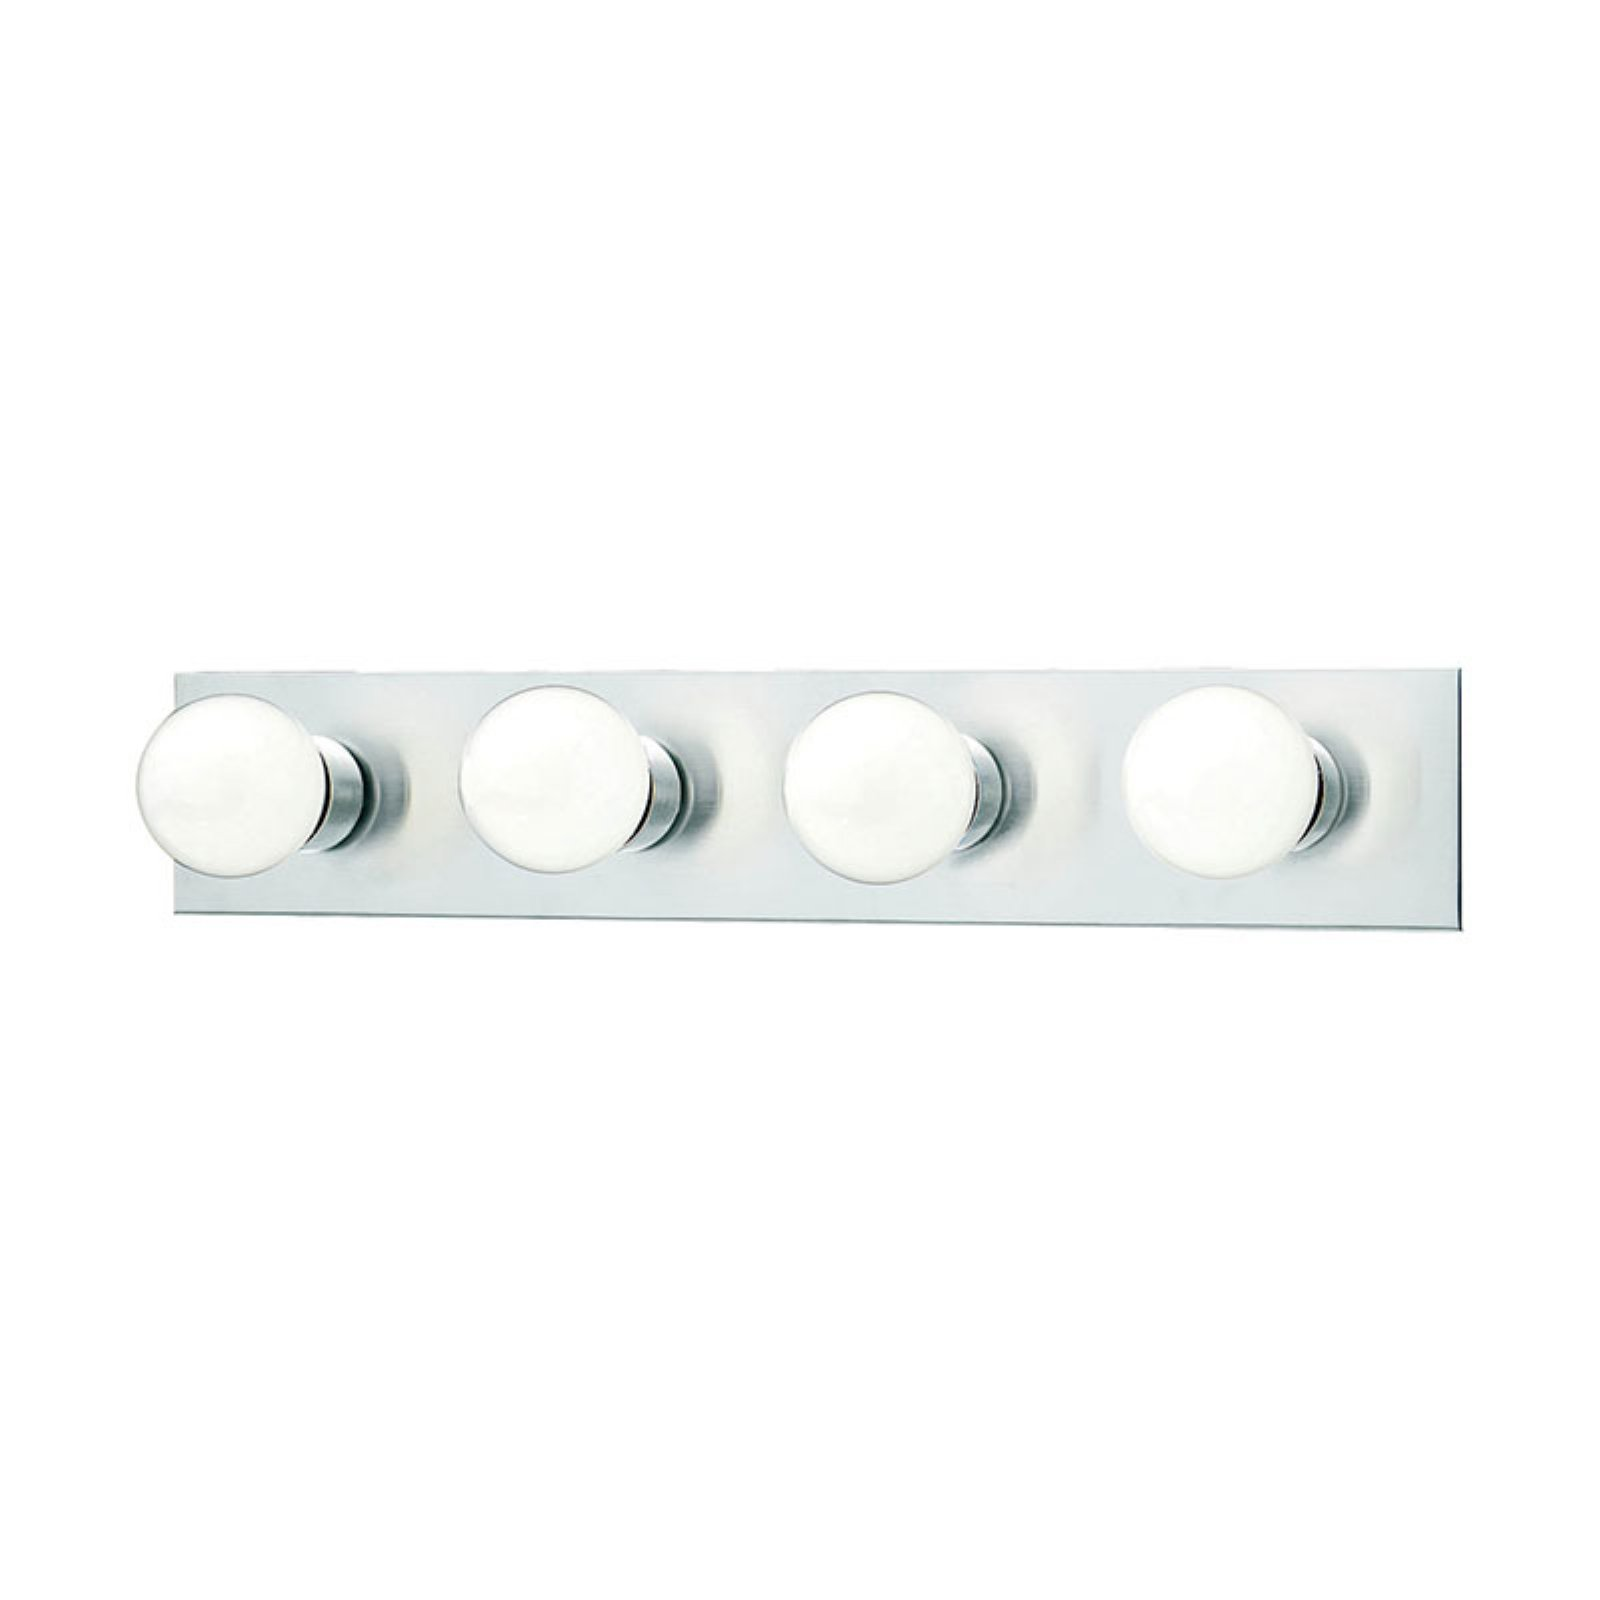 Elk lighting vanity strips 4 light bathroom vanity light